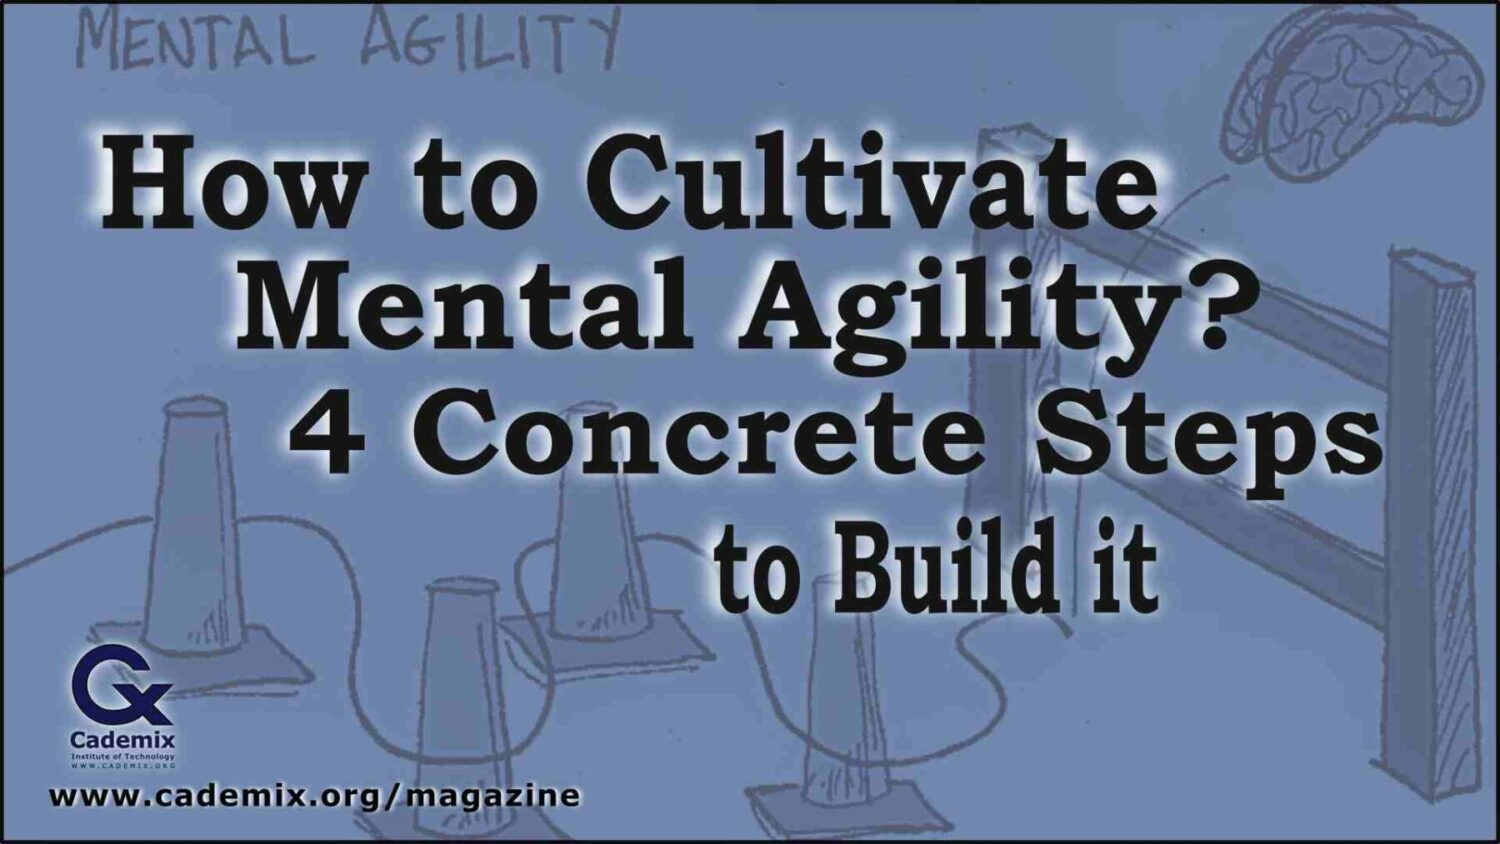 How to cultivate mental agility? 4 concrete steps to build it Cademix Magazine Article by Karima Aboukal